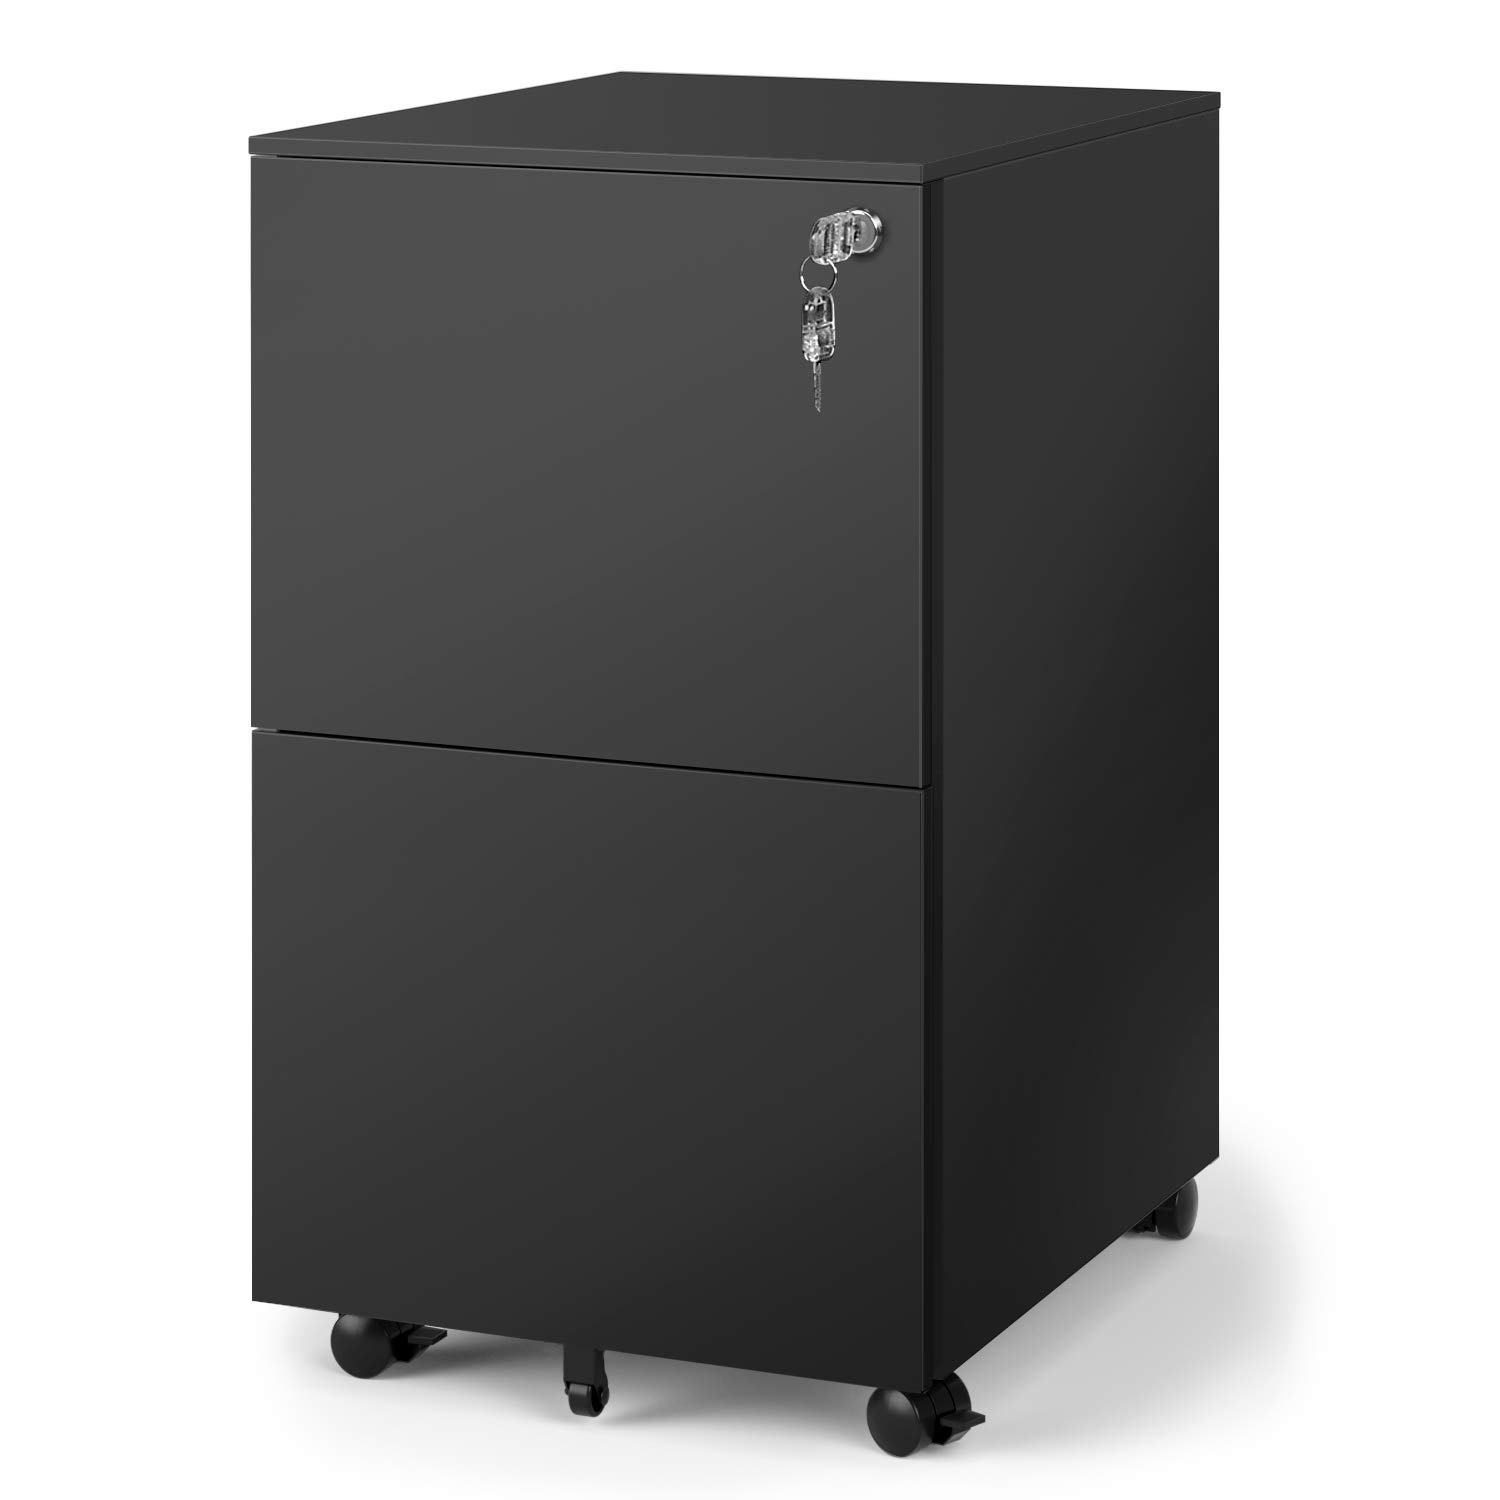 DEVAISE 2-Drawer Mobile File Cabinet with Lock, Commercial Vertical Cabinet in Black by DEVAISE